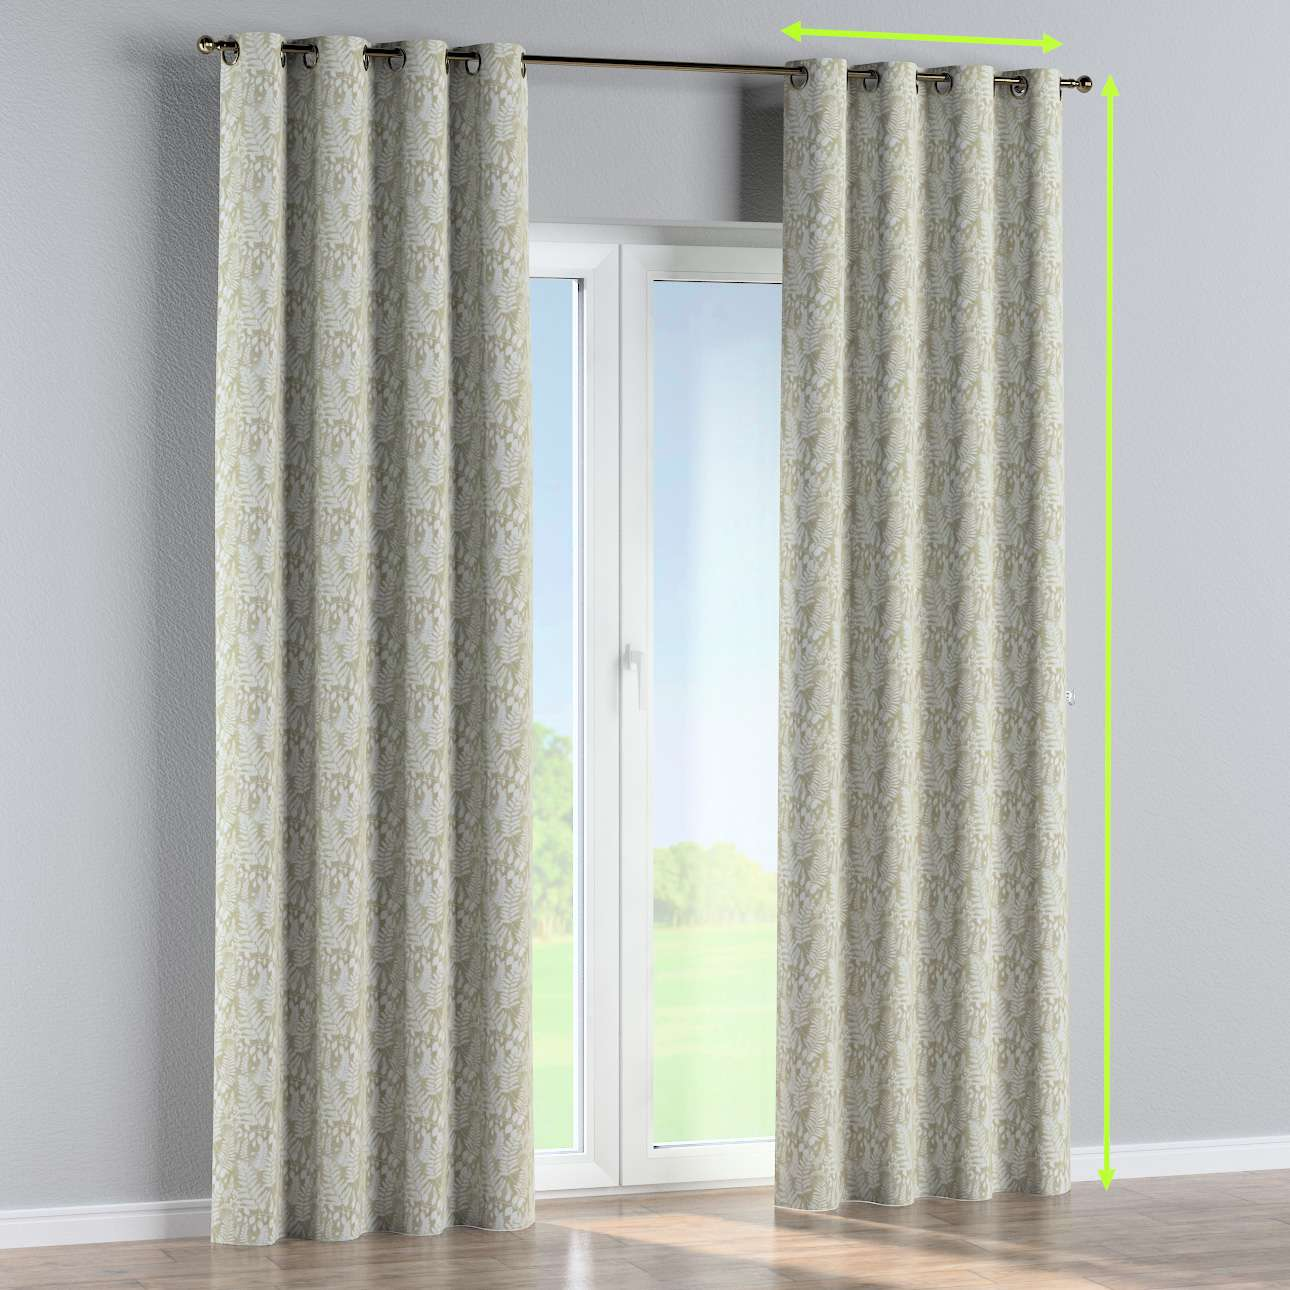 Eyelet curtain in collection Tropical Island, fabric: 142-50